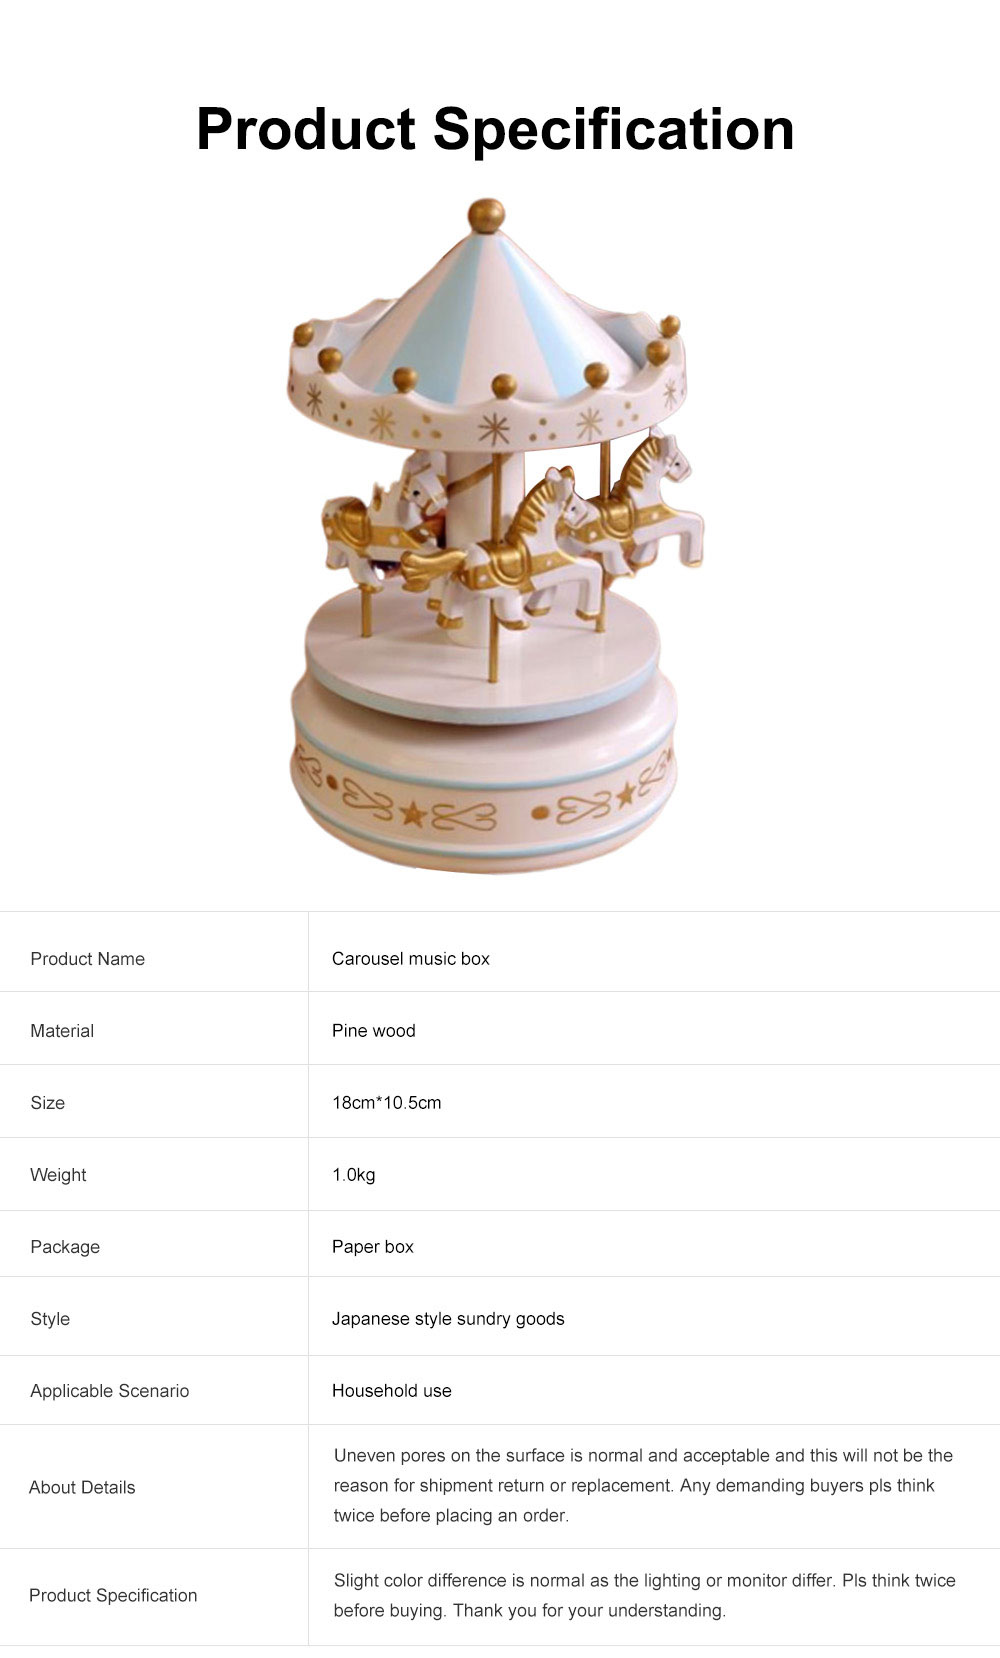 Wood-made Carousel Music Box Multiple Style Whirling Musical Box Gift or Decorative Ornaments for Household Use Craft 6